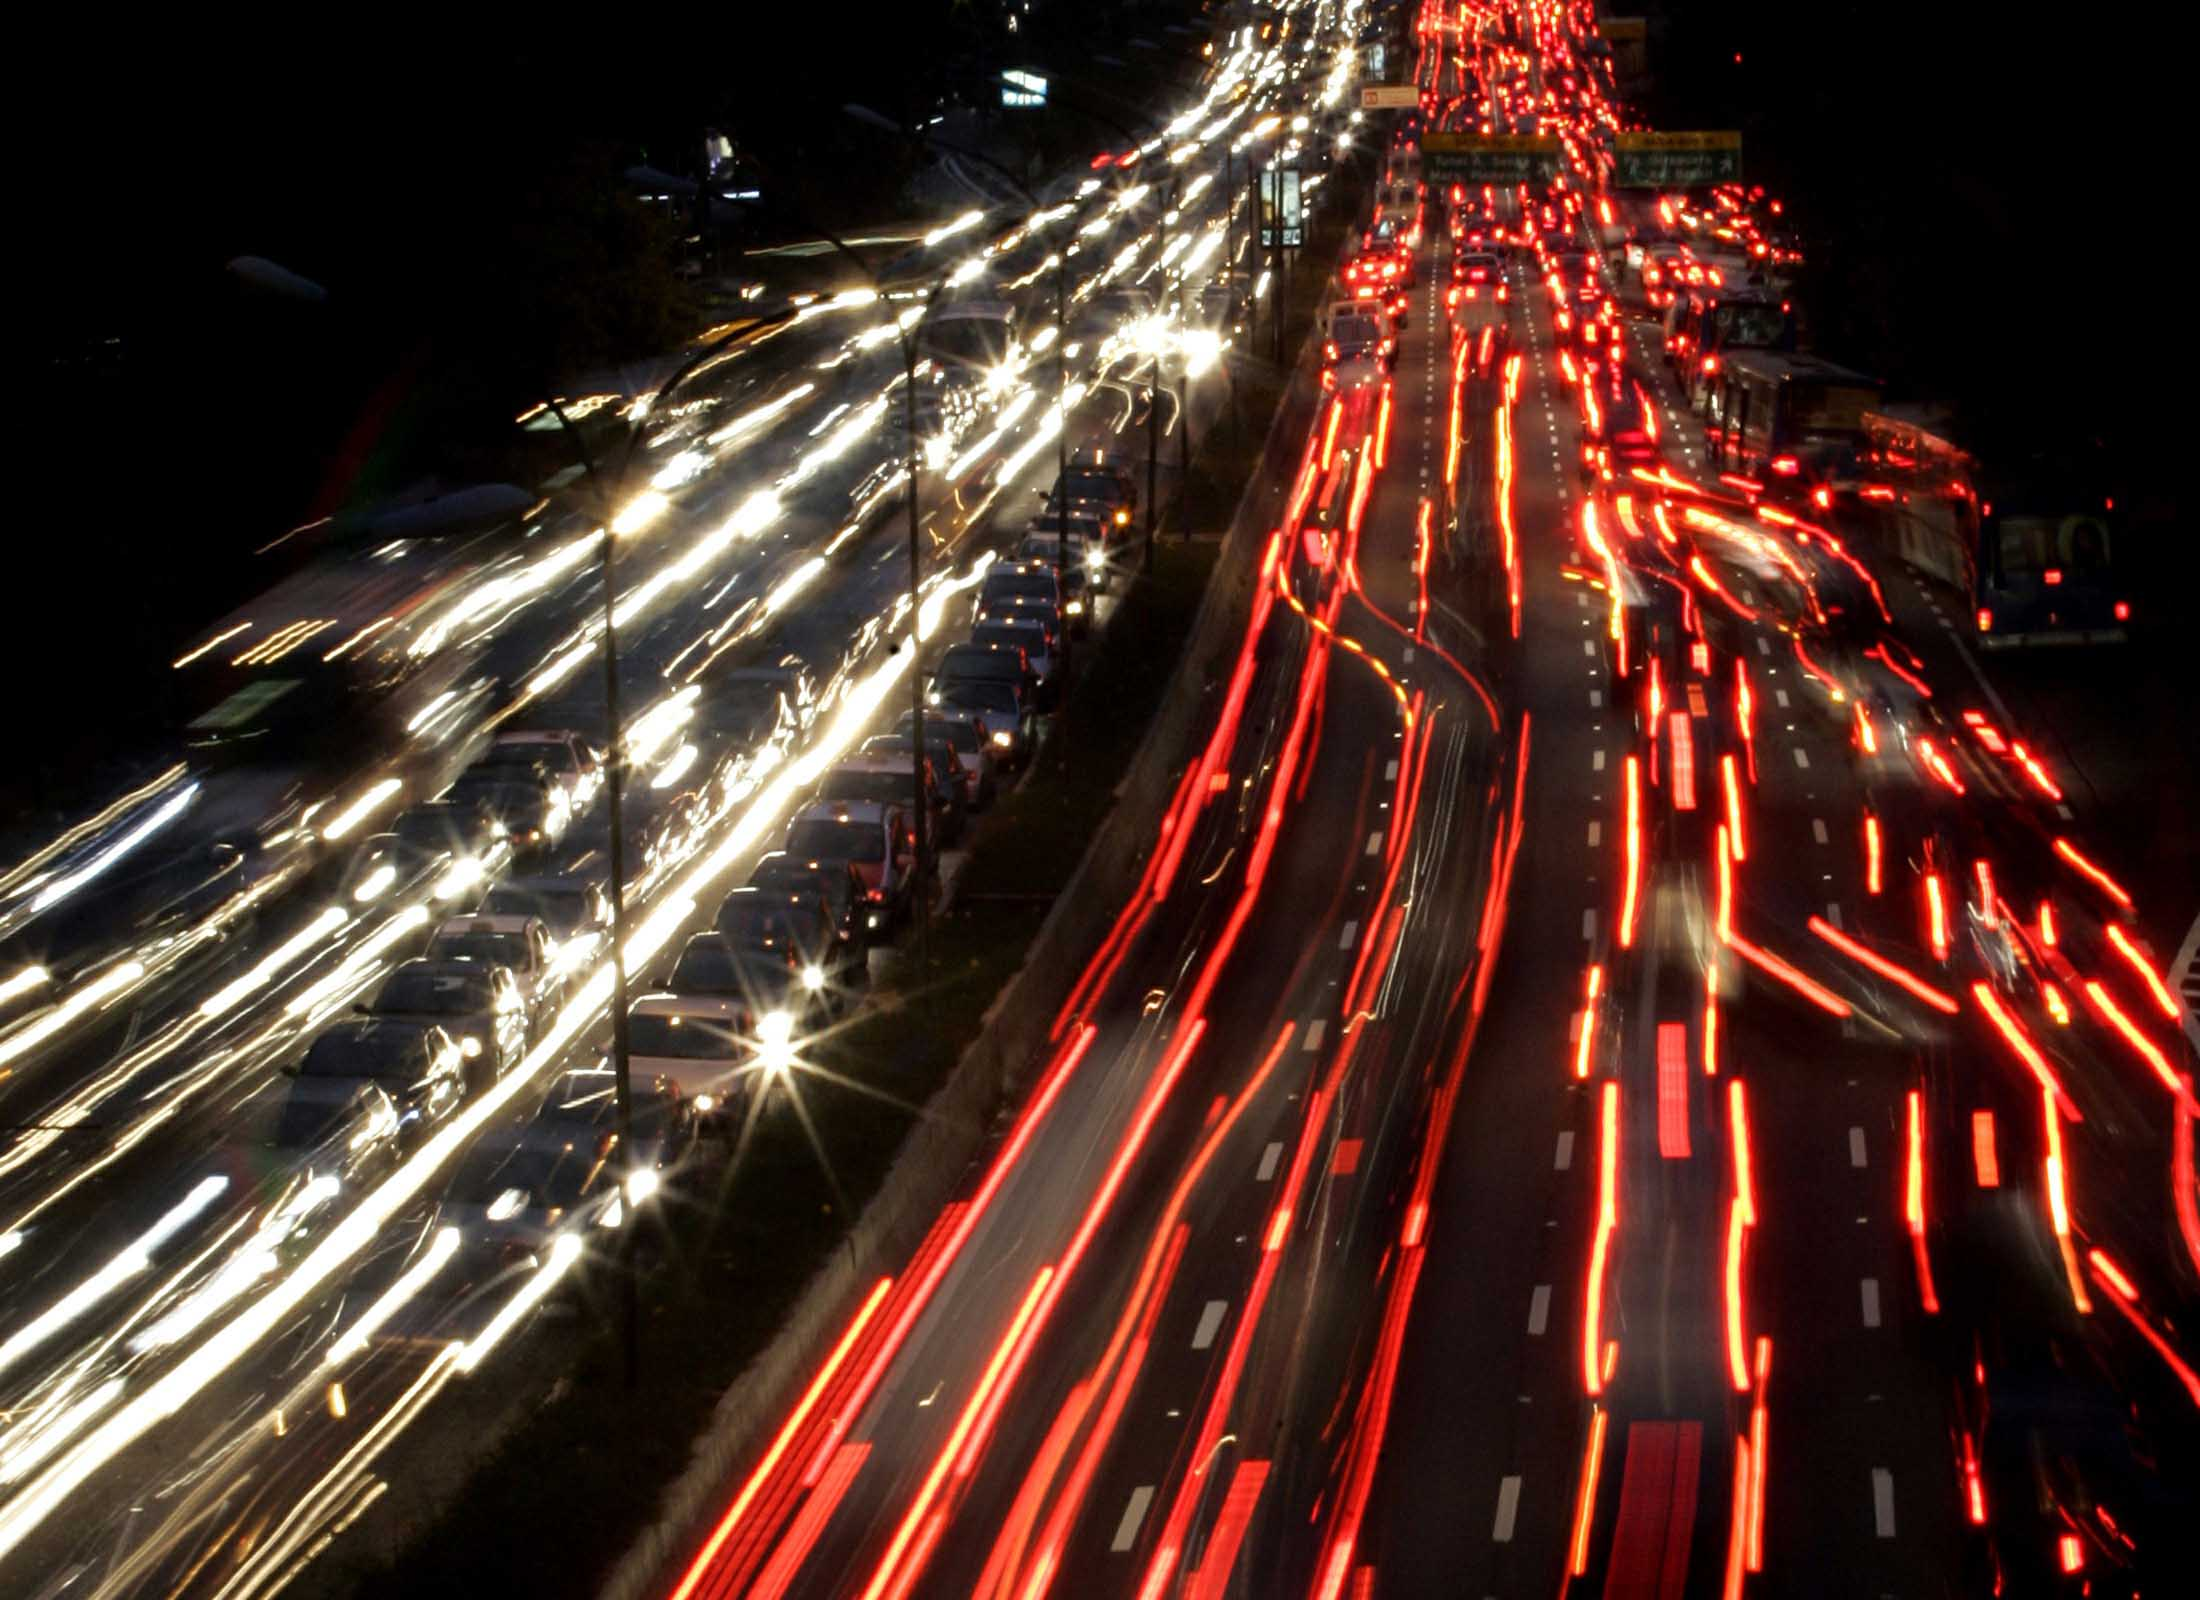 Vehicles crawl during traffic along a major road in Sao Paulo April 6, 2006. South America's biggest city and one of the three biggest metropolises in the world, greater Sao Paulo has a population estimated at nearly 20 million. REUTERS/Paulo Whitaker